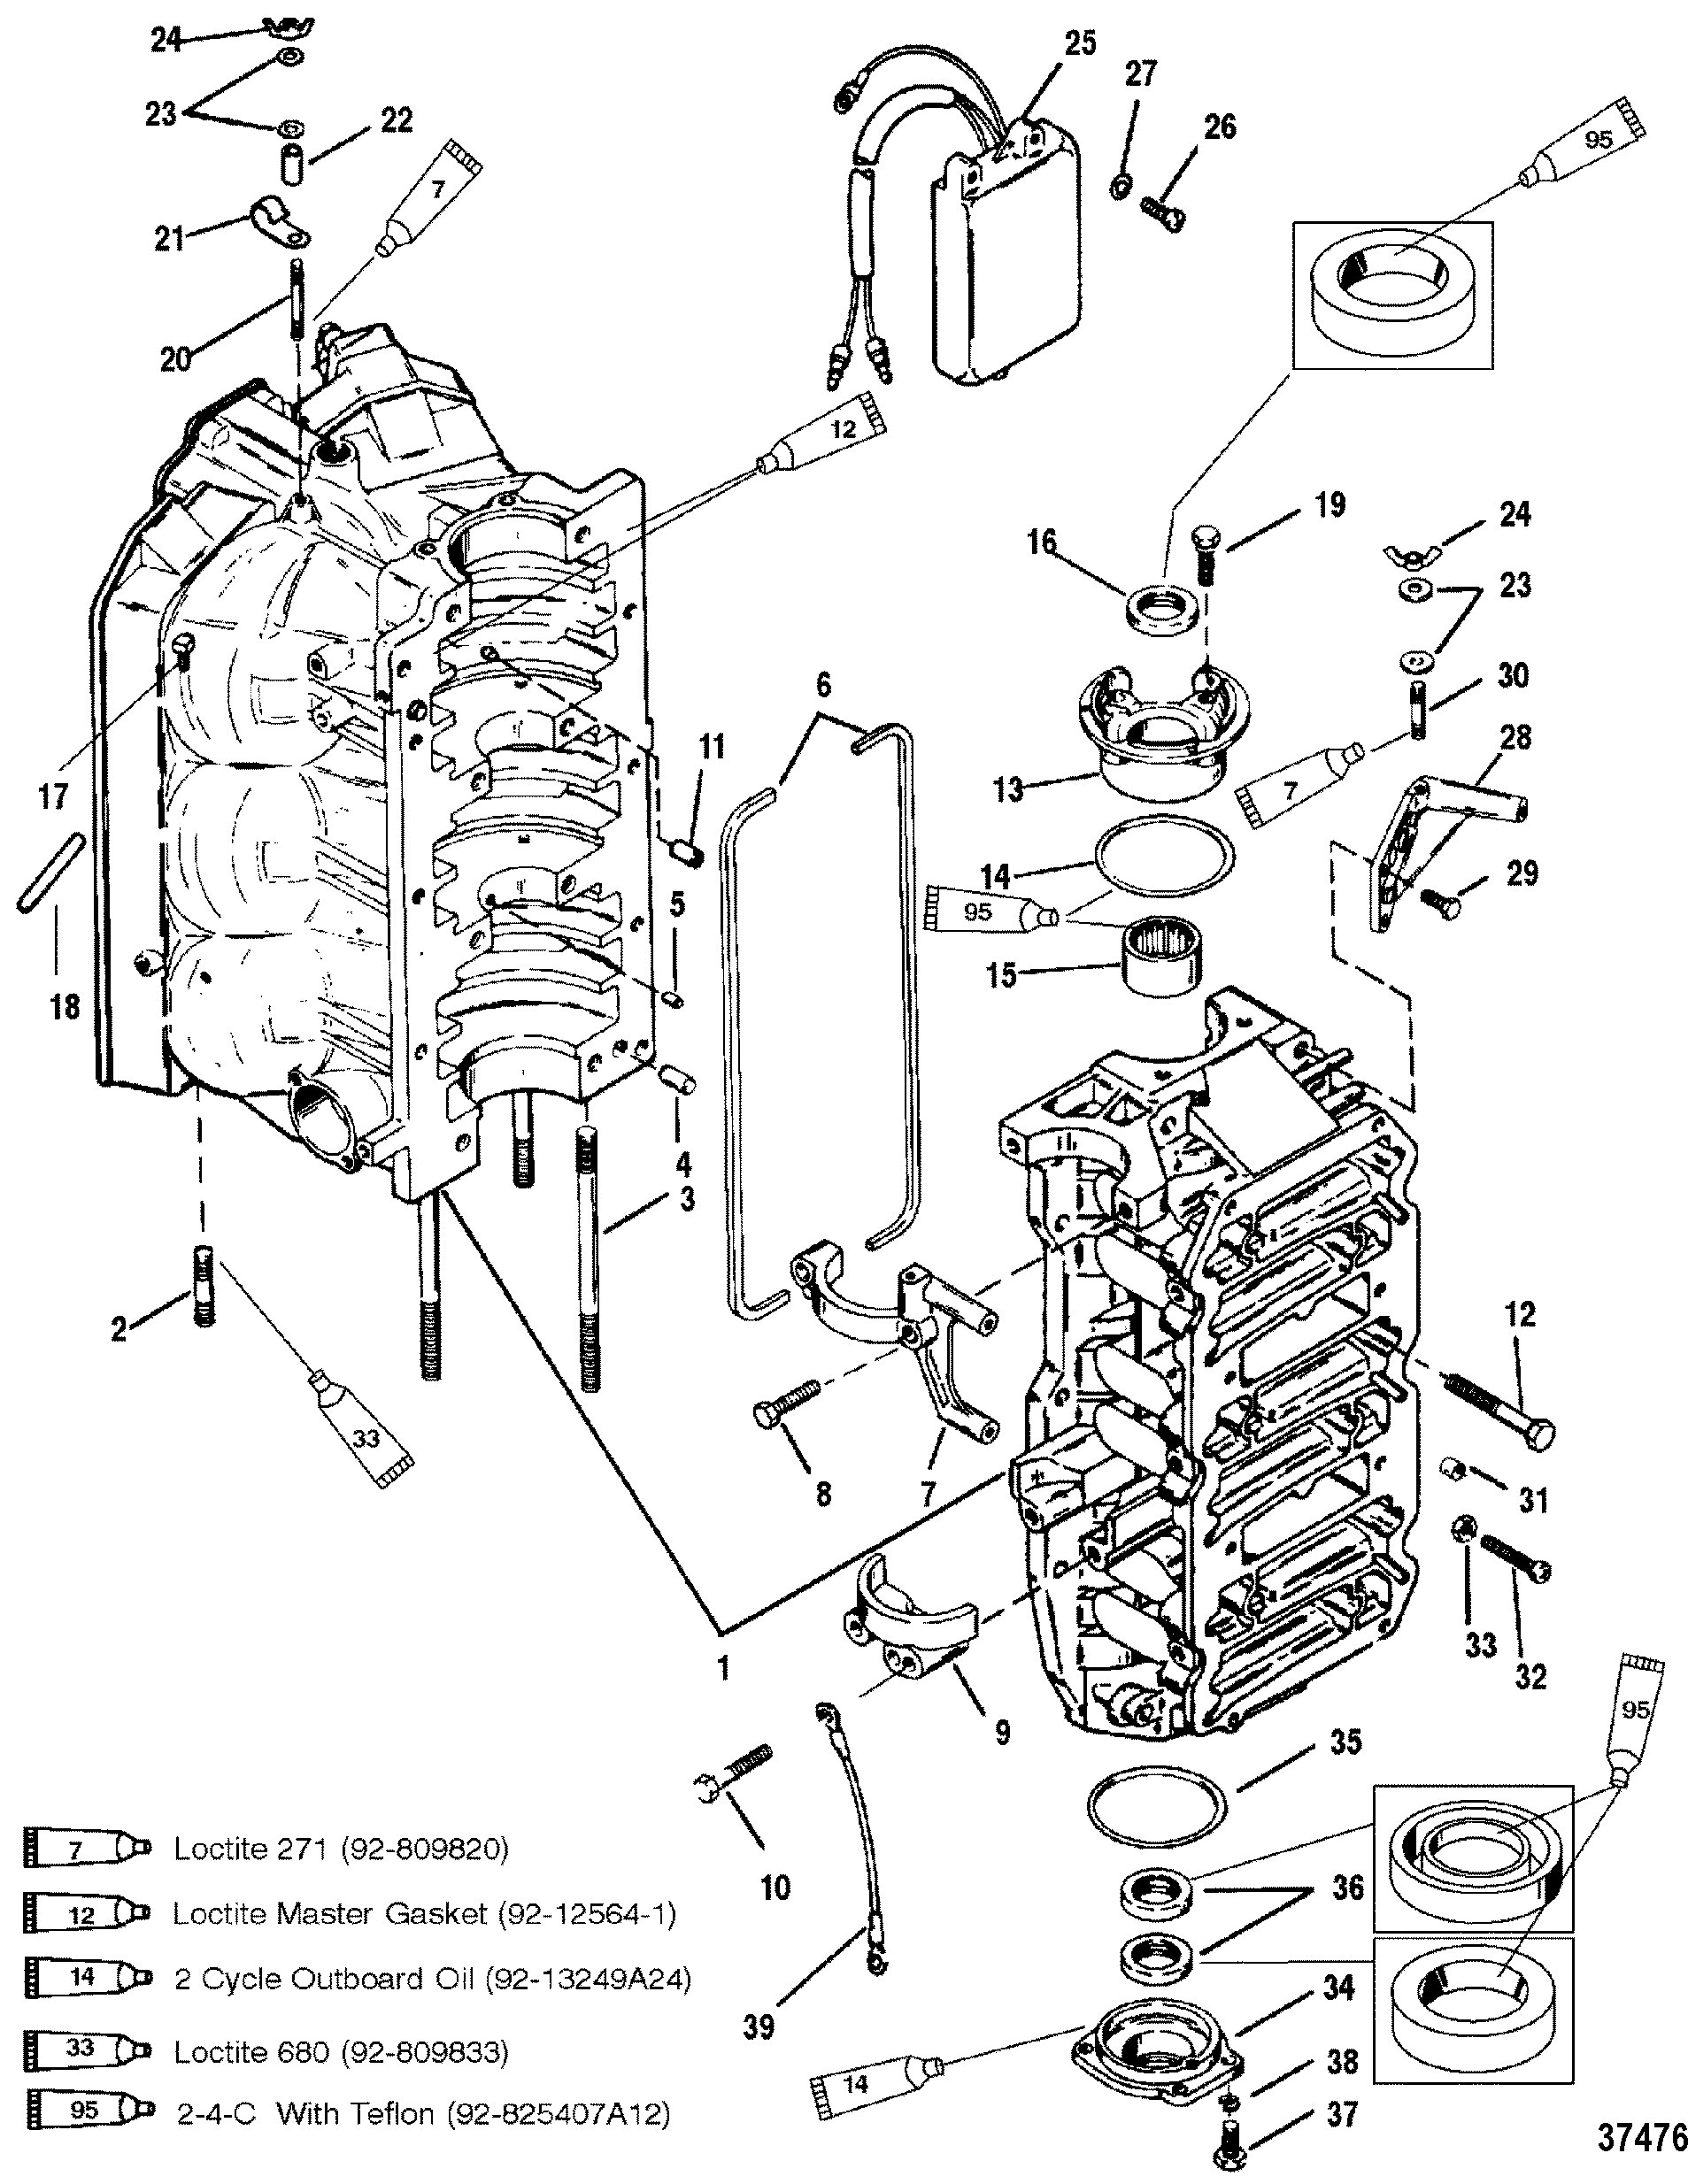 Mercury 200 Efi Wiring Diagram  2001 Mercury 200 Efi Wiring Diagram Mercury Auto Wiring  Mercury